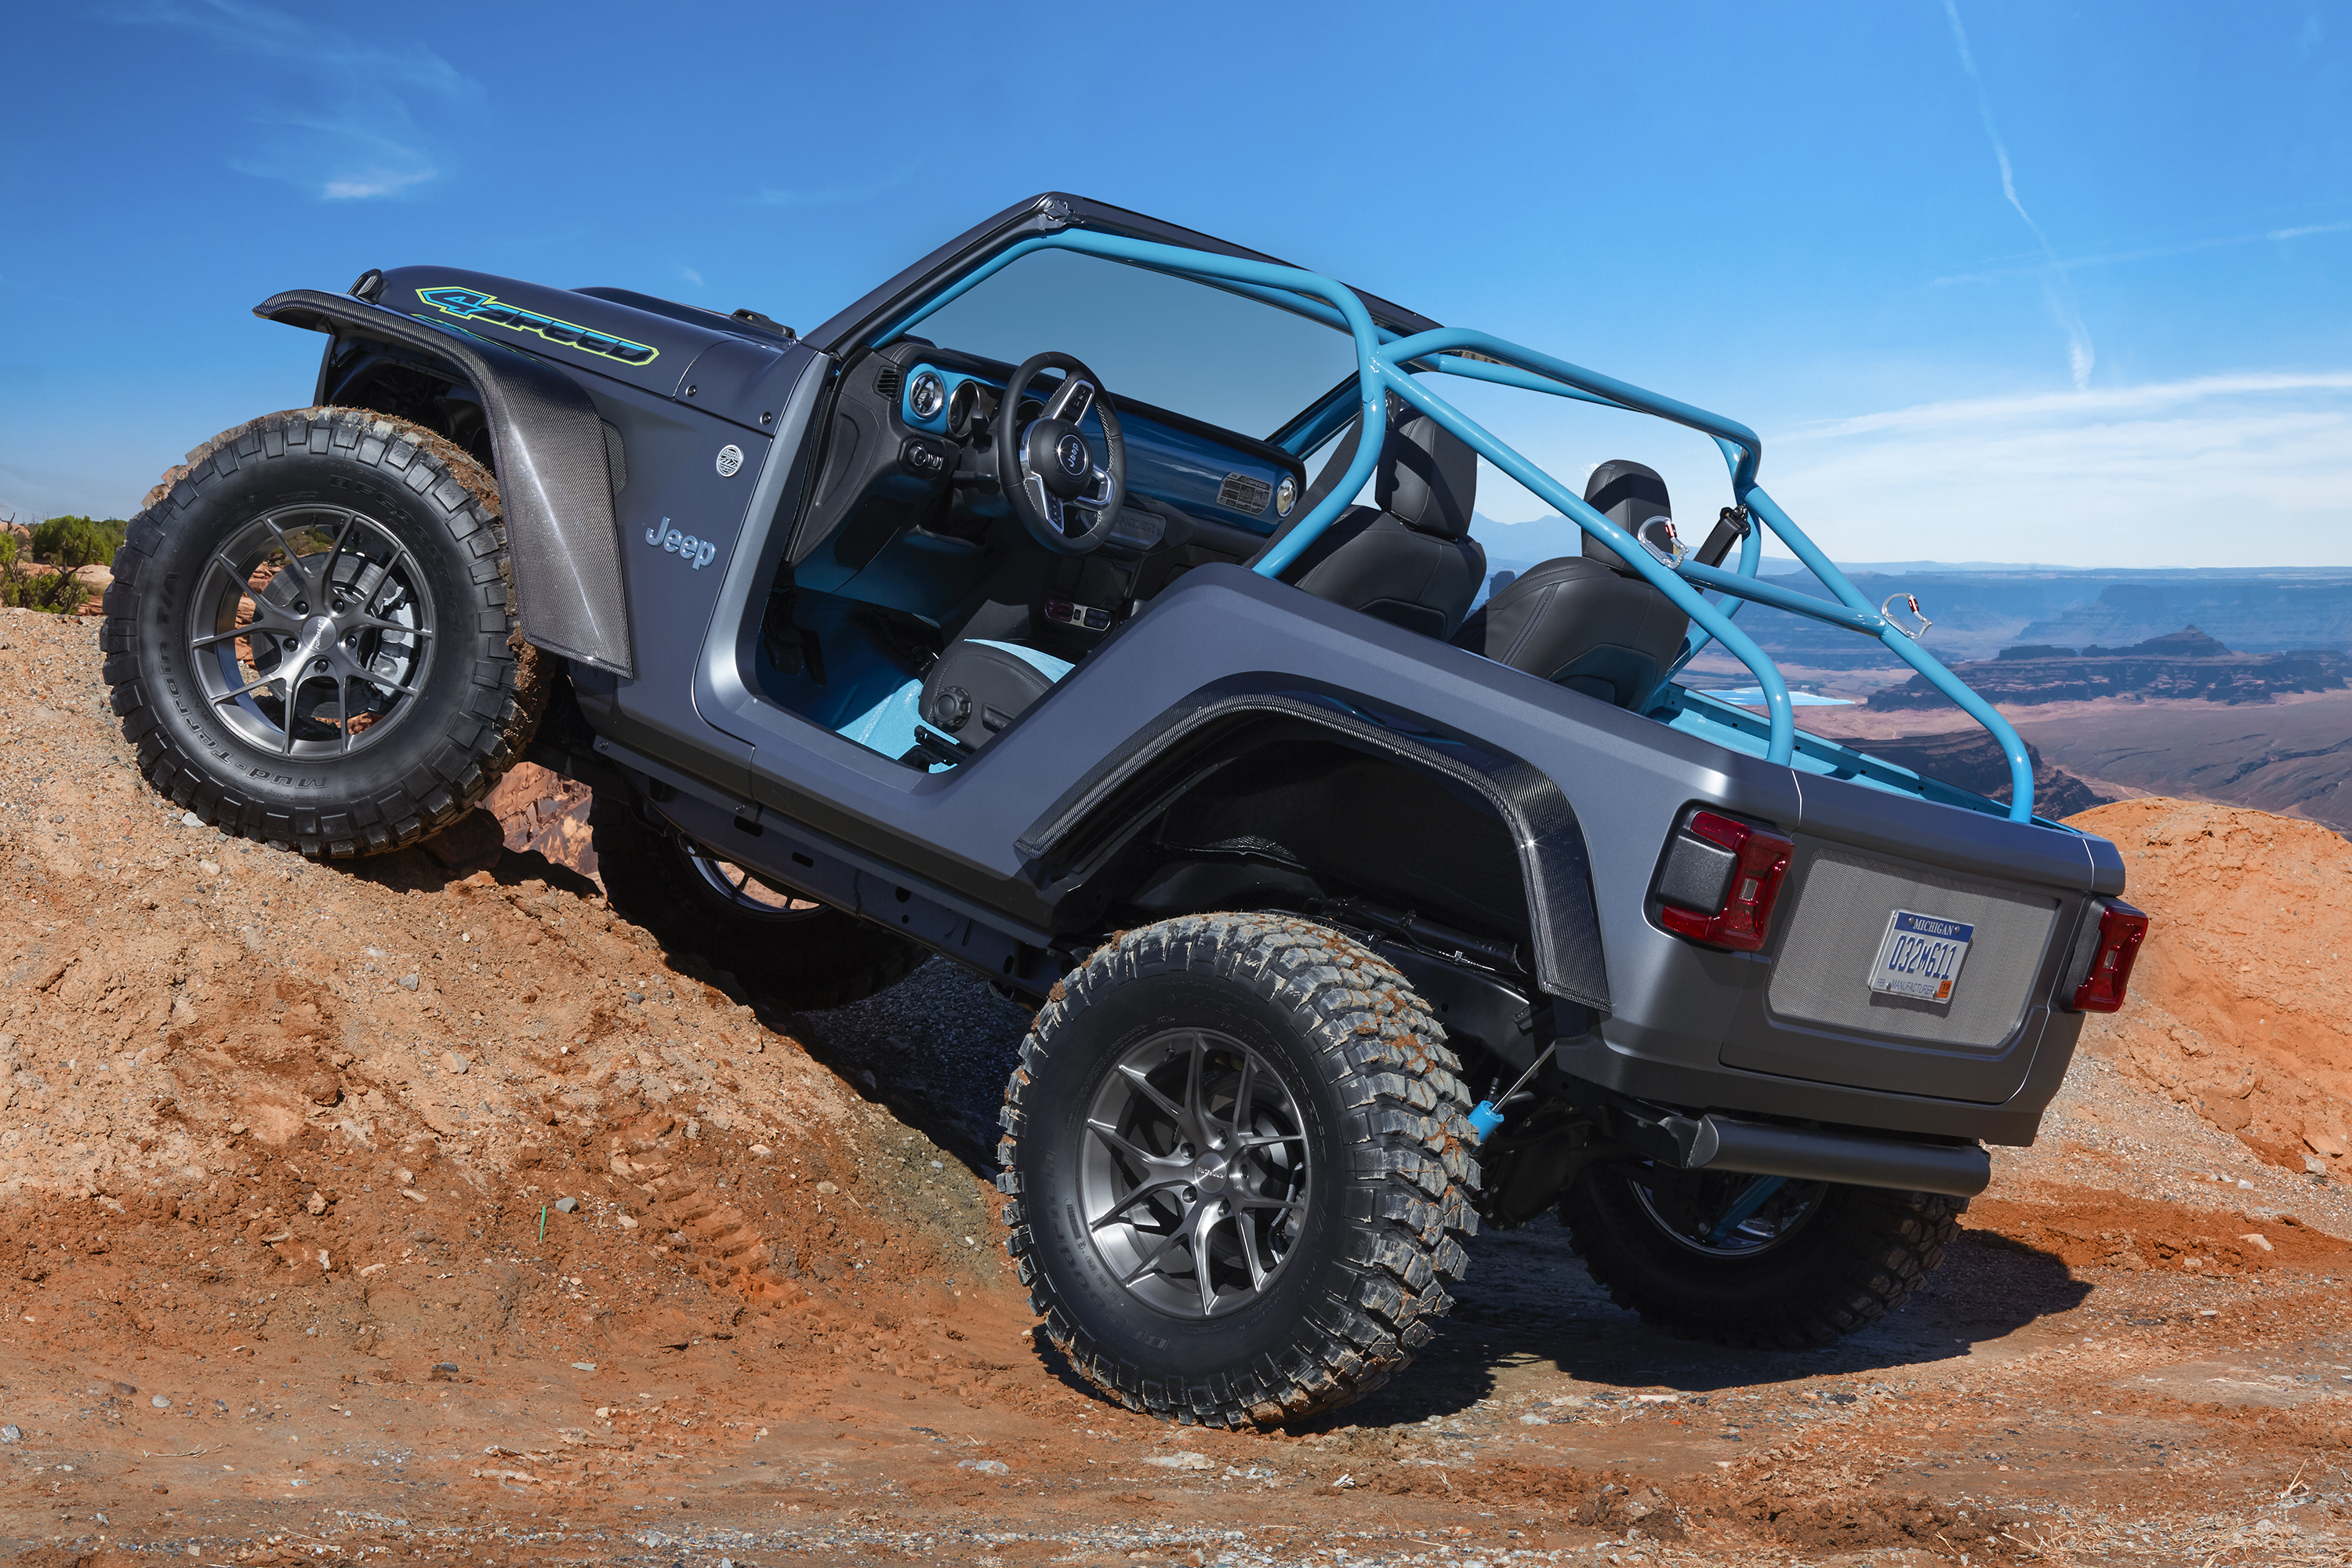 Jeep Teases 7 'Easter Safari' Concepts for 2018 | GearJunkie